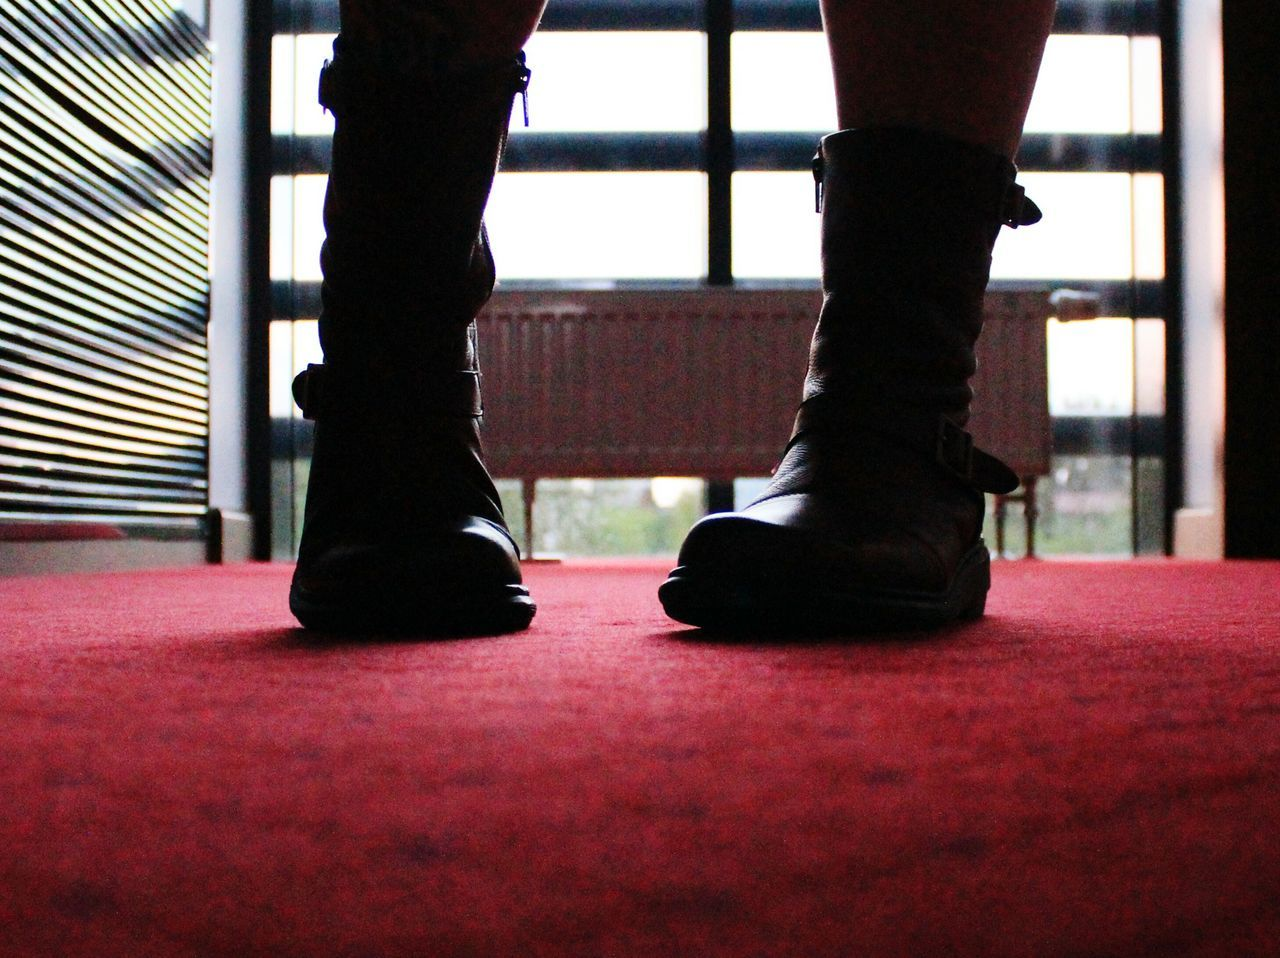 Indoors  Low Section Adult Adults Only Human Body Part Red Carpet Event One Person Close-up Day Footfetishnation Girlfriends Feet Girlfriend Girlswithtattoos Girls Feet Feets Interiorviews Indoors  Home Interior Interior Design Boots DirtyBoots Martens Dr. Martens Redboots Fashion Stories